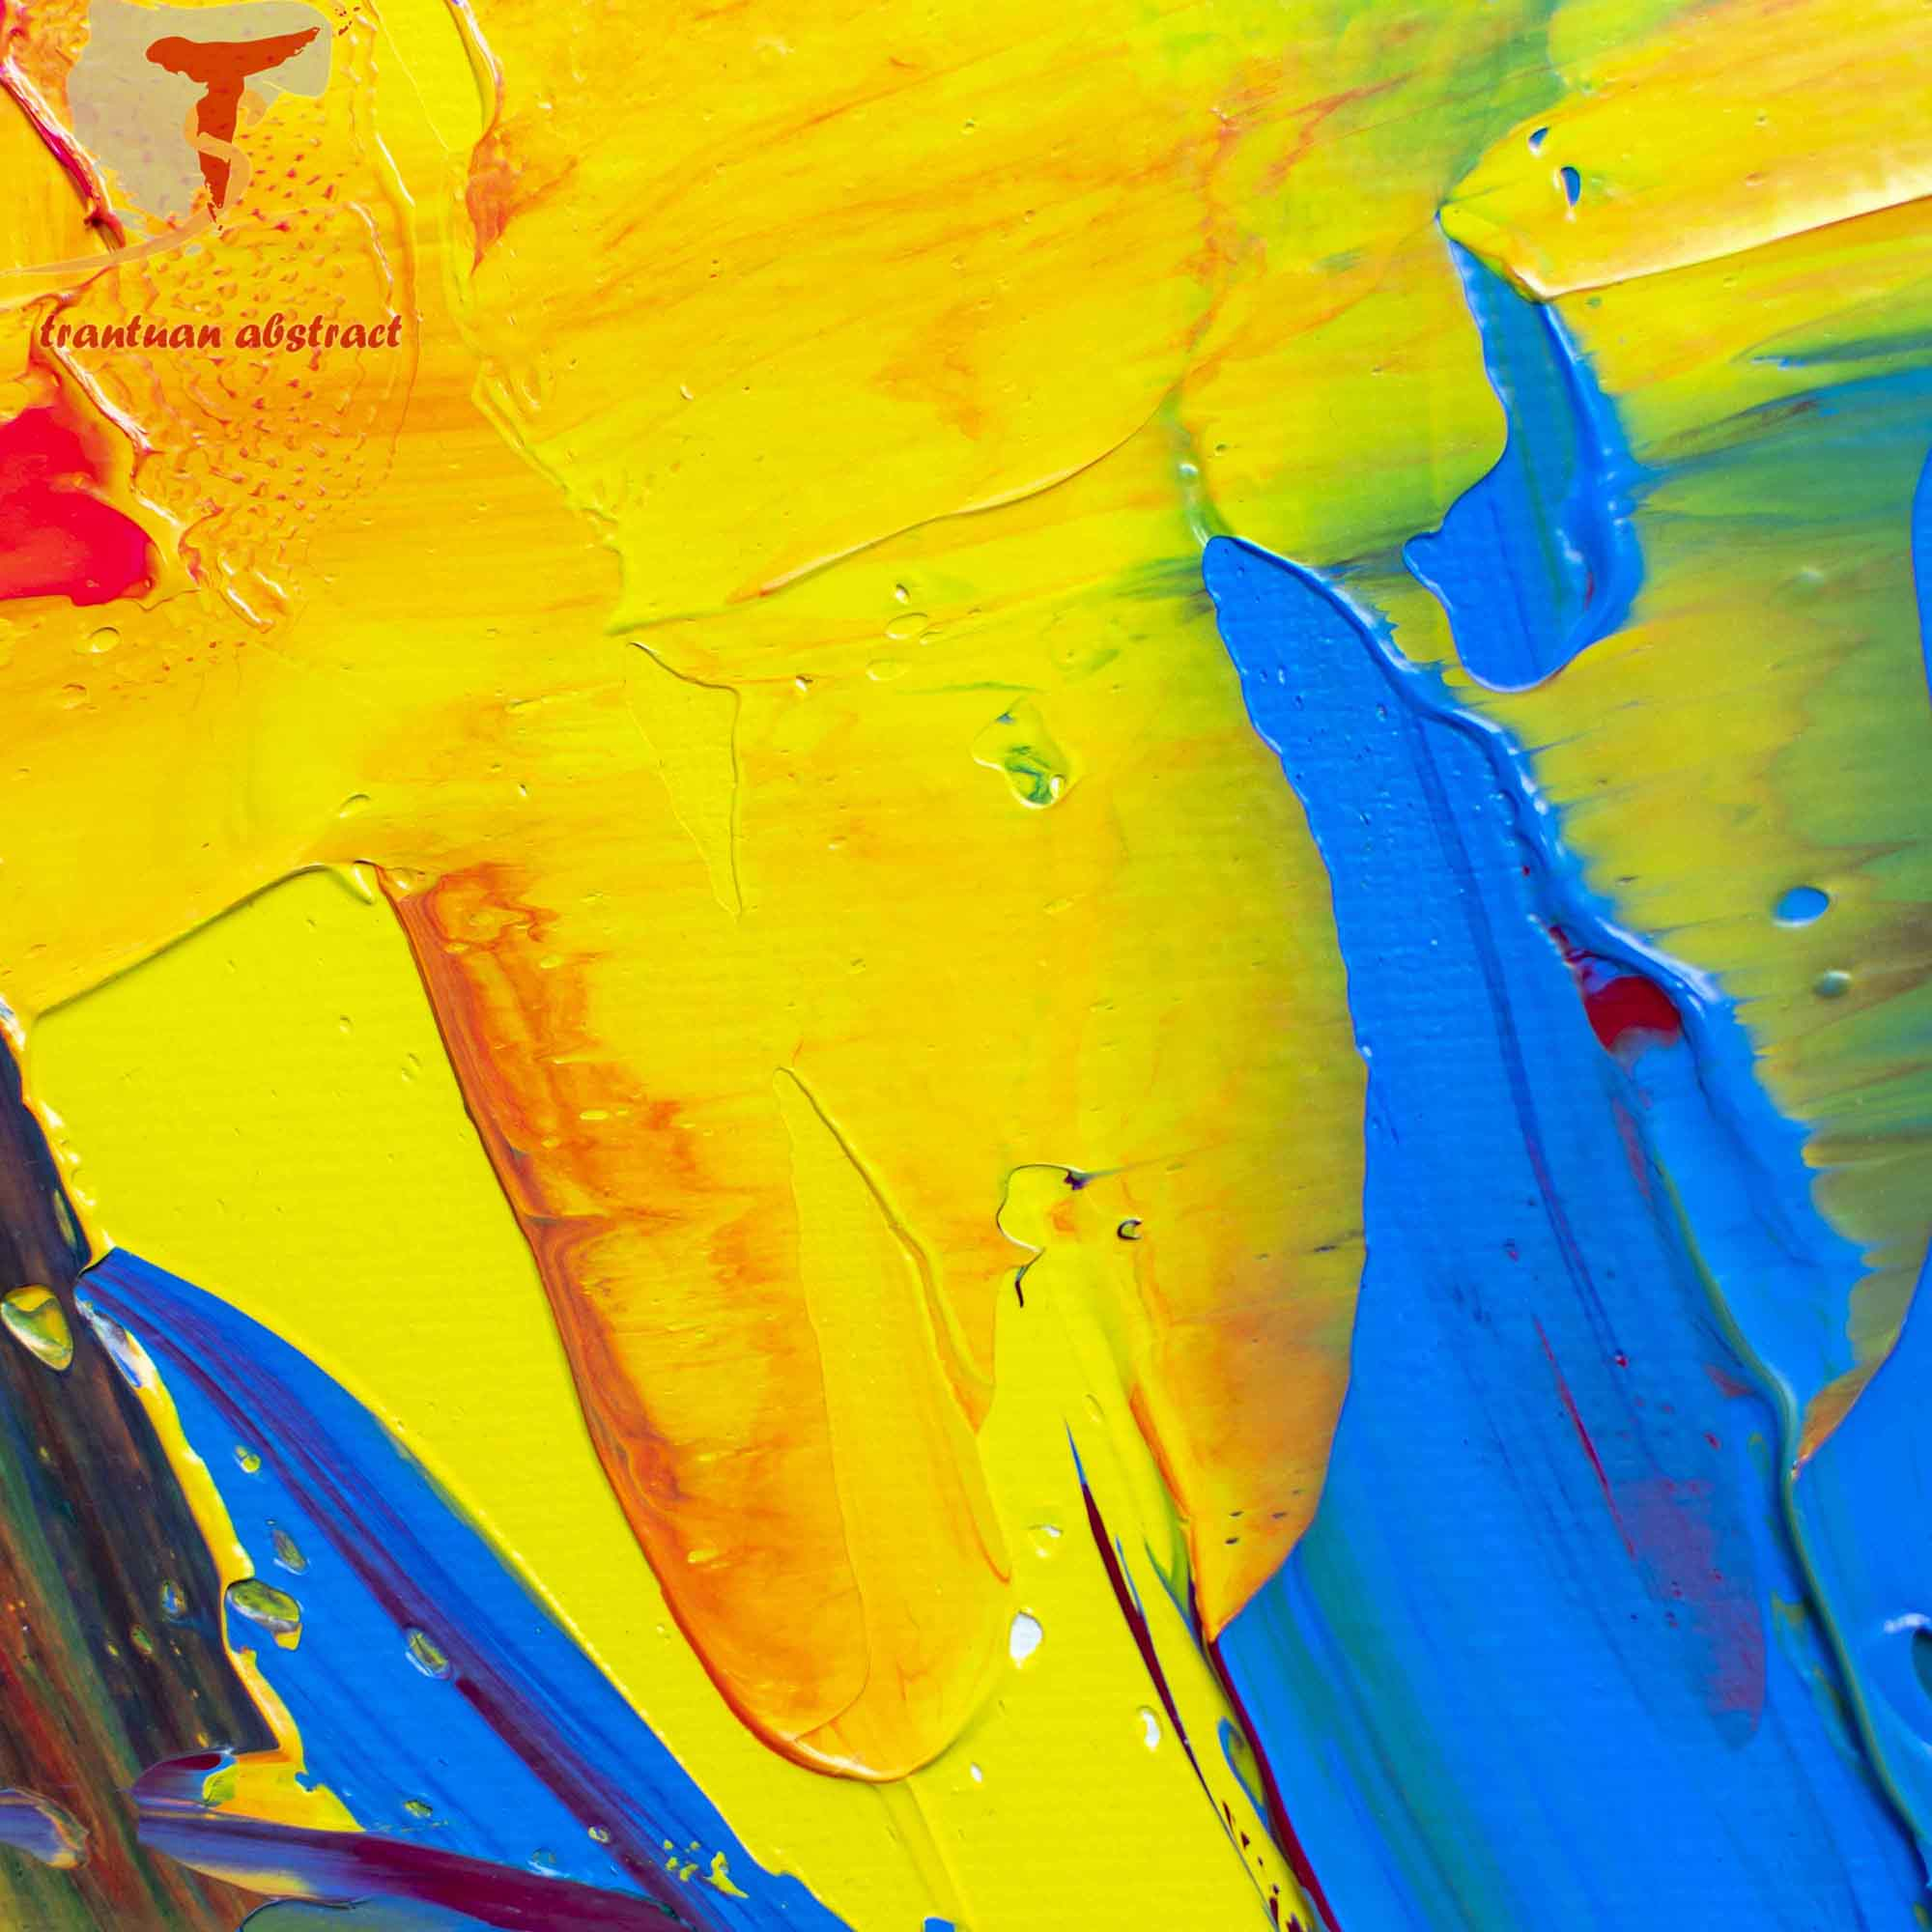 Tran Tuan Abstract Sweet Sunshine 2021 120 x 100 x 5 cm Acrylic on Canvas Painting Detail s (27)